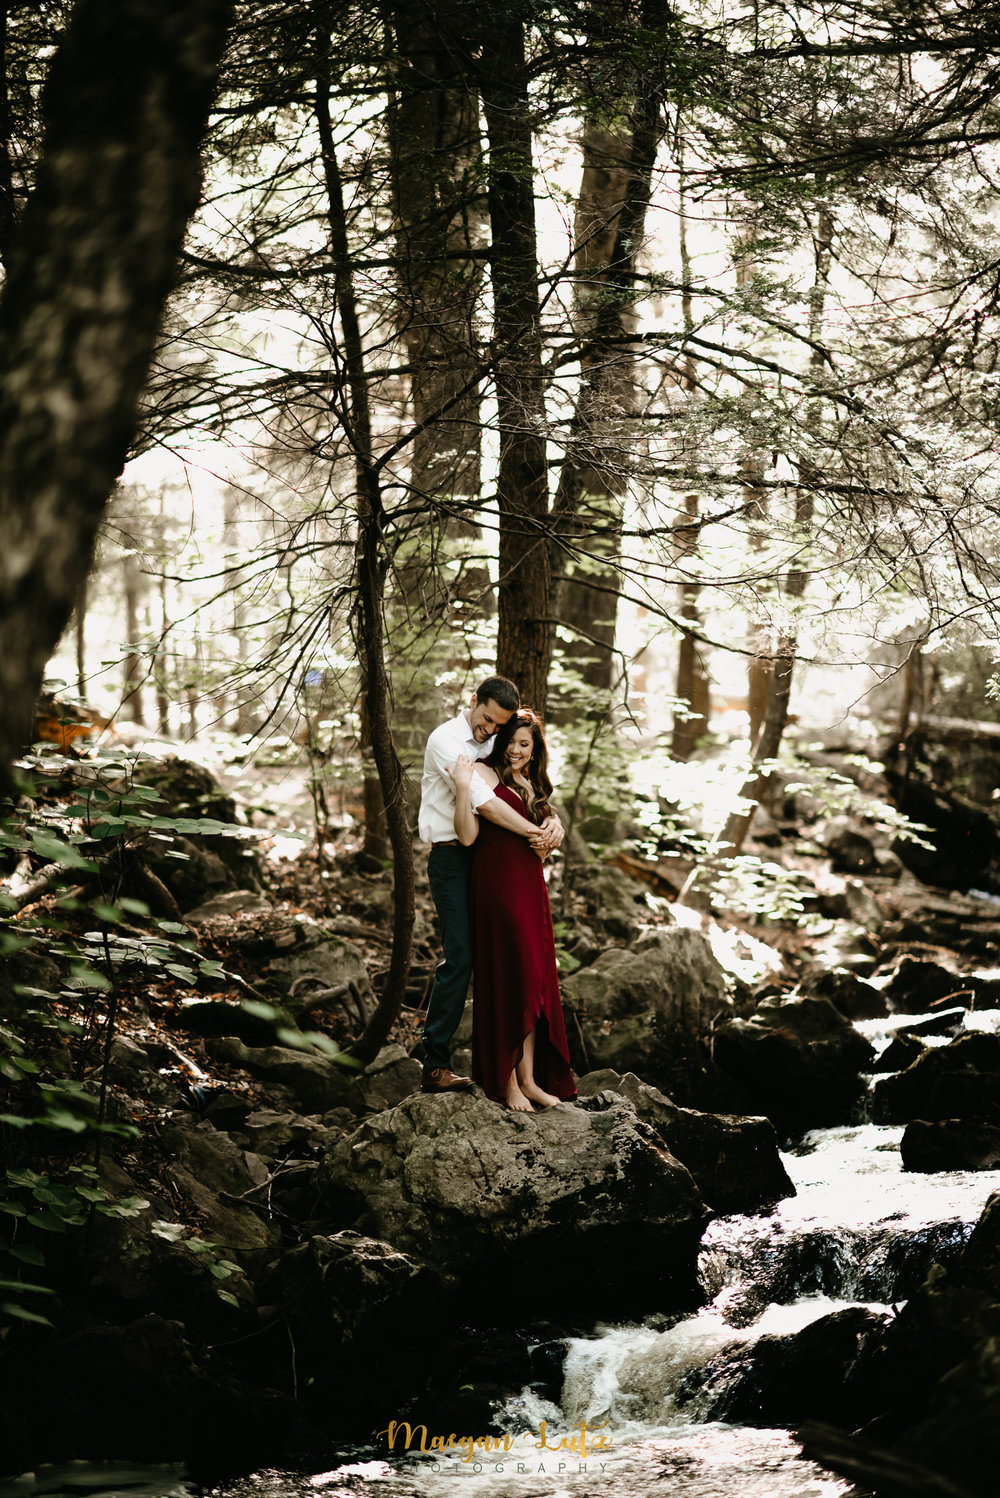 NEPA-Engagement-Wedding-Photographer-Session-at-Ricketts-Glen-State-Park-4.jpg